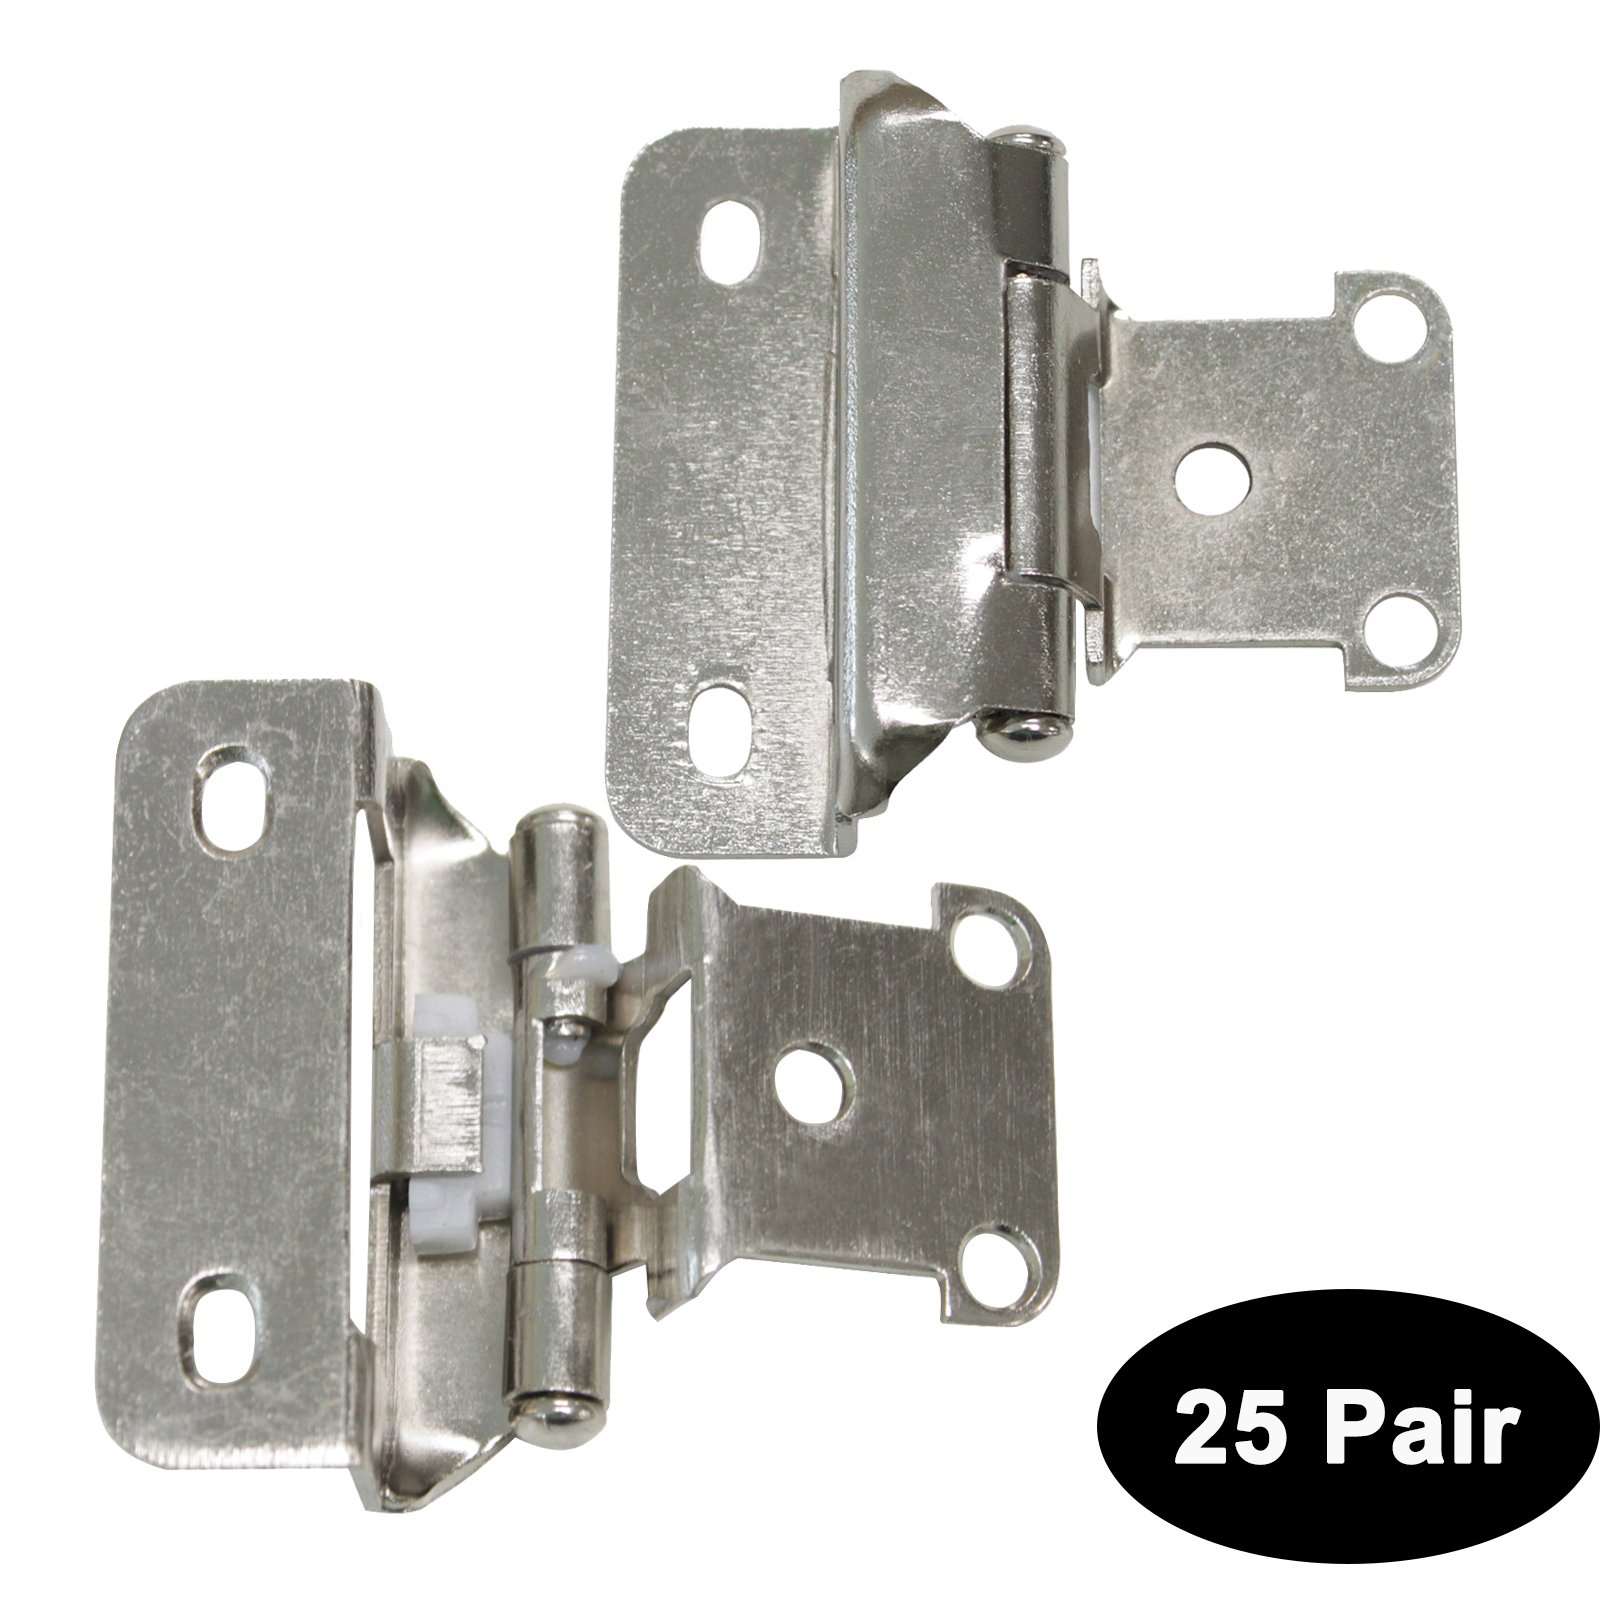 50 Pack(25 pairs) Probrico HMCH196-SN Brushed Satin Nickel Decorative Self Closing Face Mount Kitchen Cabinet Hinges Step 1/2'' in Overlay by Probrico